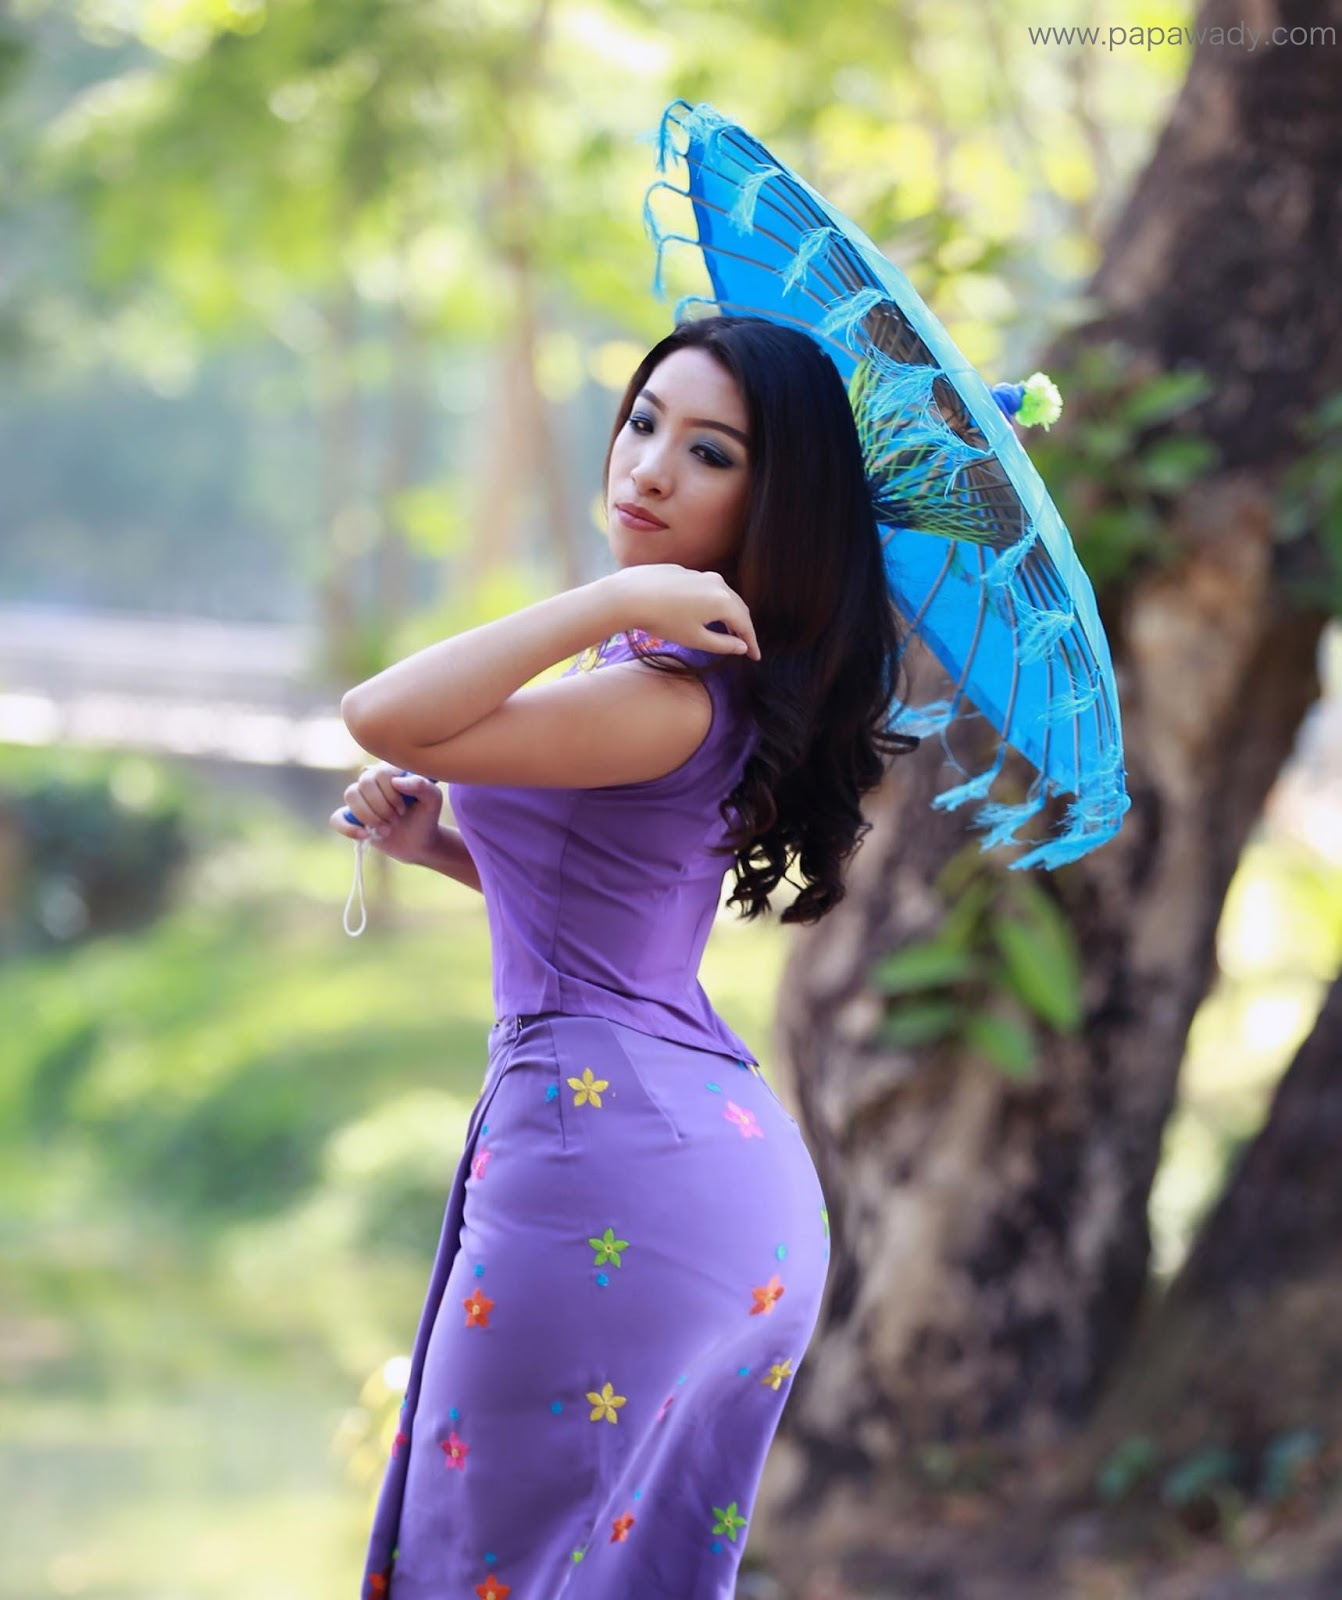 Nan Mwe San New Outdoor Photoshoot In Myanmar Dress At The Park